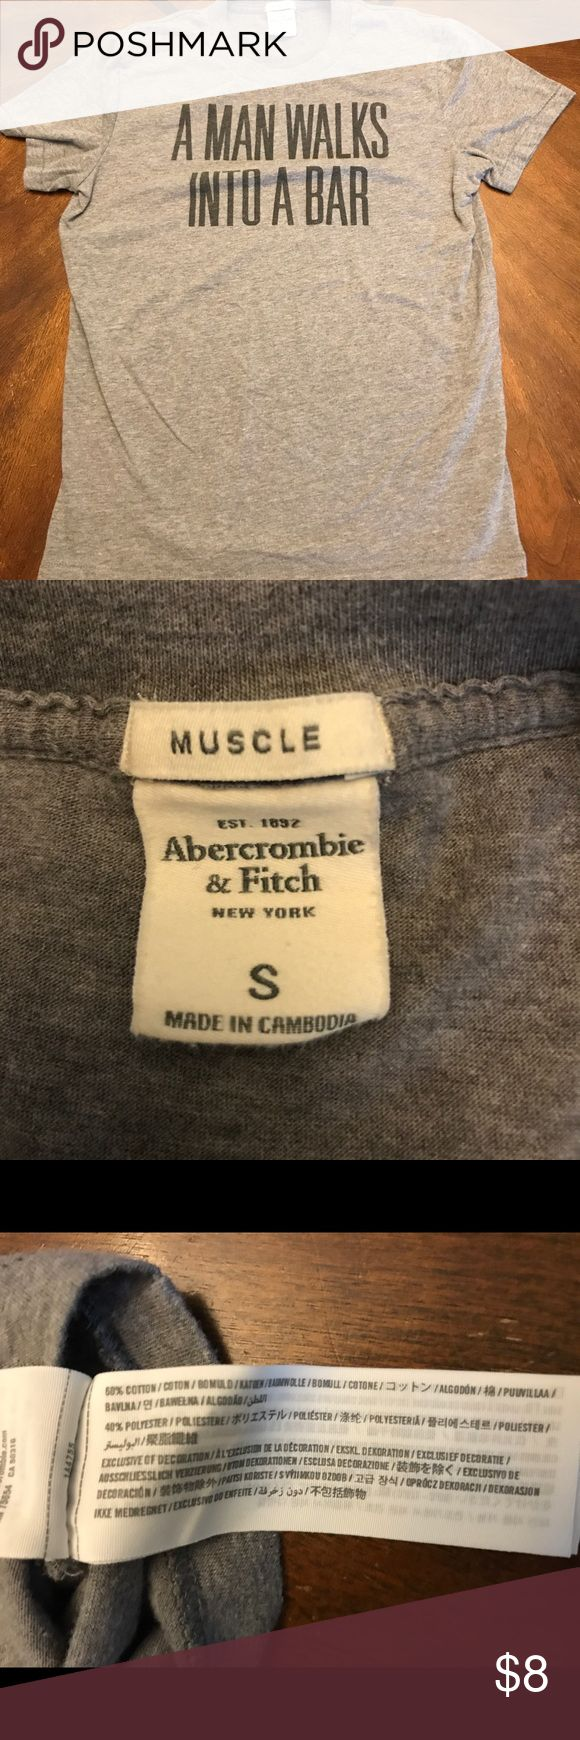 Abercrombie and Fitch Man Walks Into a Bar Small This is a super soft, great condition tshirt from Abercrombie & Fitch. It's gray and says A Man Walks Into A Bar. AF makes great shirts and this is no exception. It's a Small and the fit is muscle. It's a cotton and polyester blend. Abercrombie & Fitch Shirts Tees - Short Sleeve